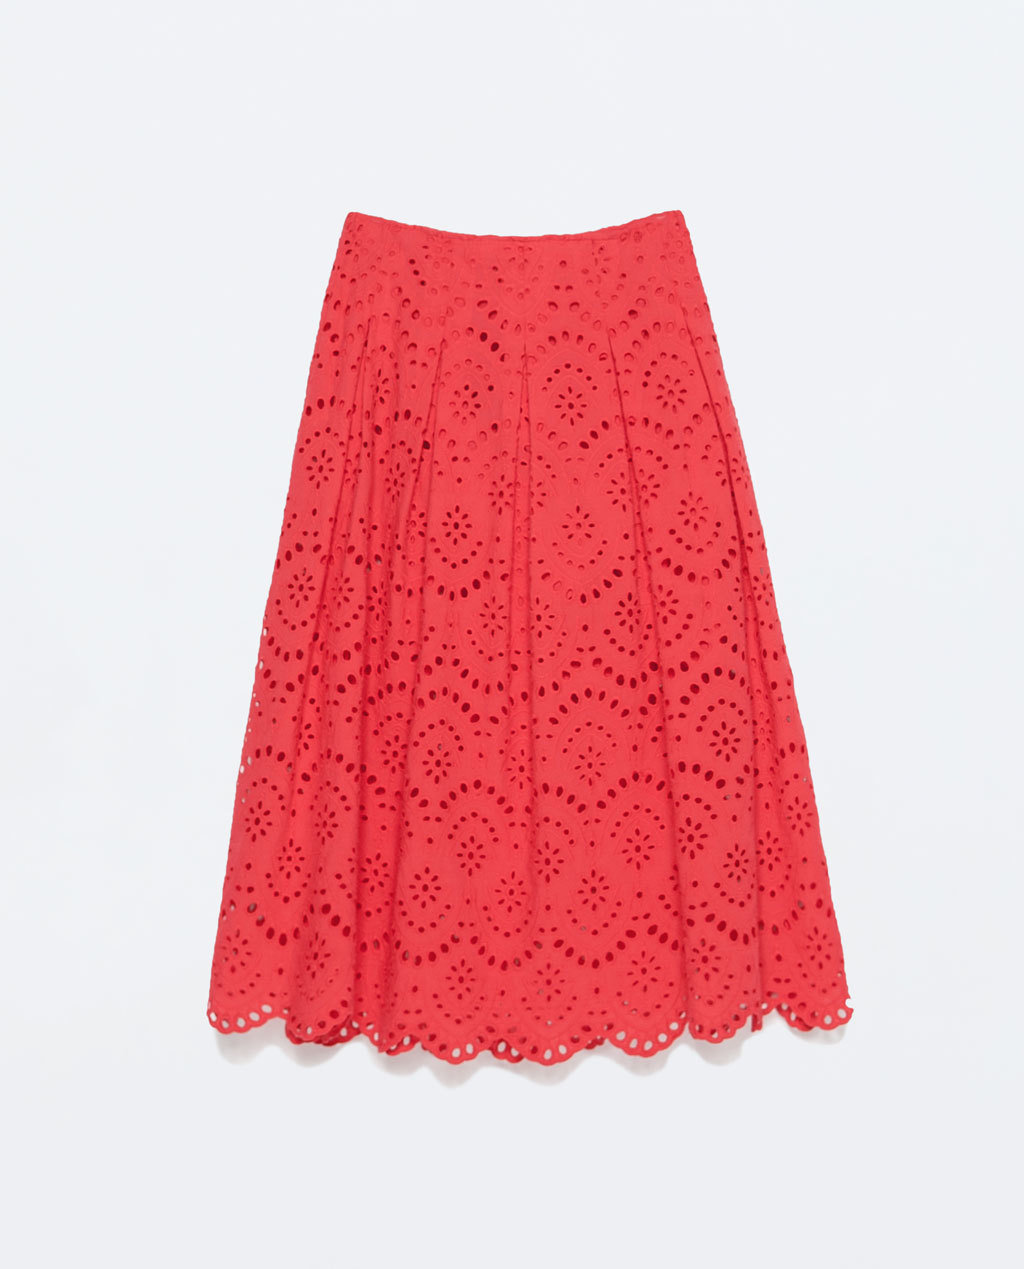 Long Laser Cut Skirt - pattern: plain; fit: loose/voluminous; waist: high rise; predominant colour: true red; occasions: evening, occasion; length: on the knee; style: a-line; fibres: cotton - 100%; hip detail: subtle/flattering hip detail; pattern type: fabric; texture group: woven light midweight; season: s/s 2015; wardrobe: event